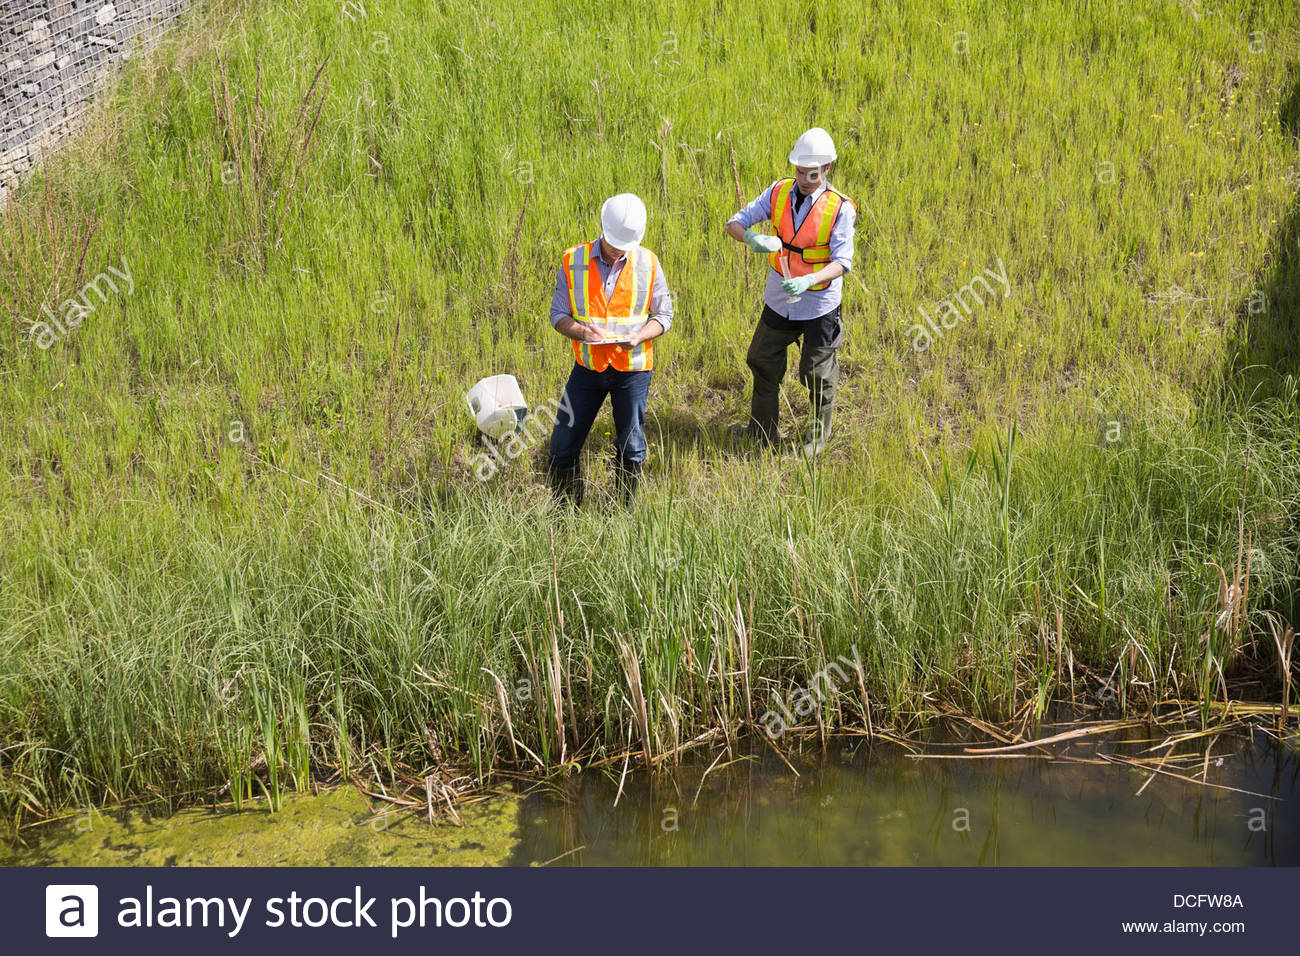 Ecologists exploring riverbank - Stock Image